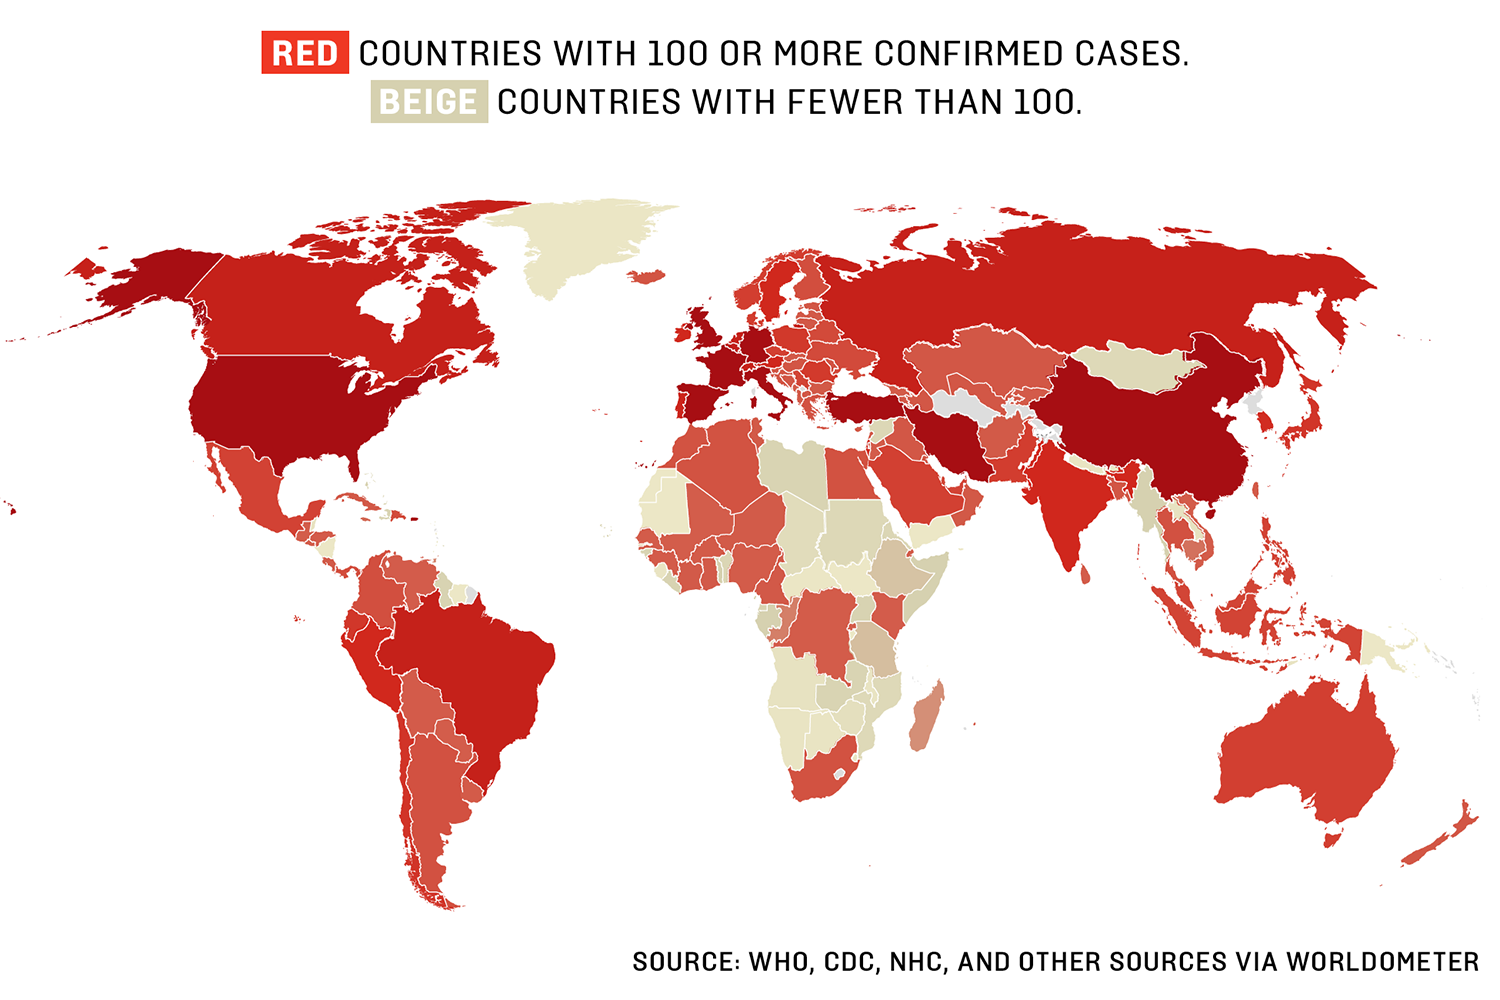 Coronavirus Map: Daily Updates on the Toll of the COVID-19 Pandemic